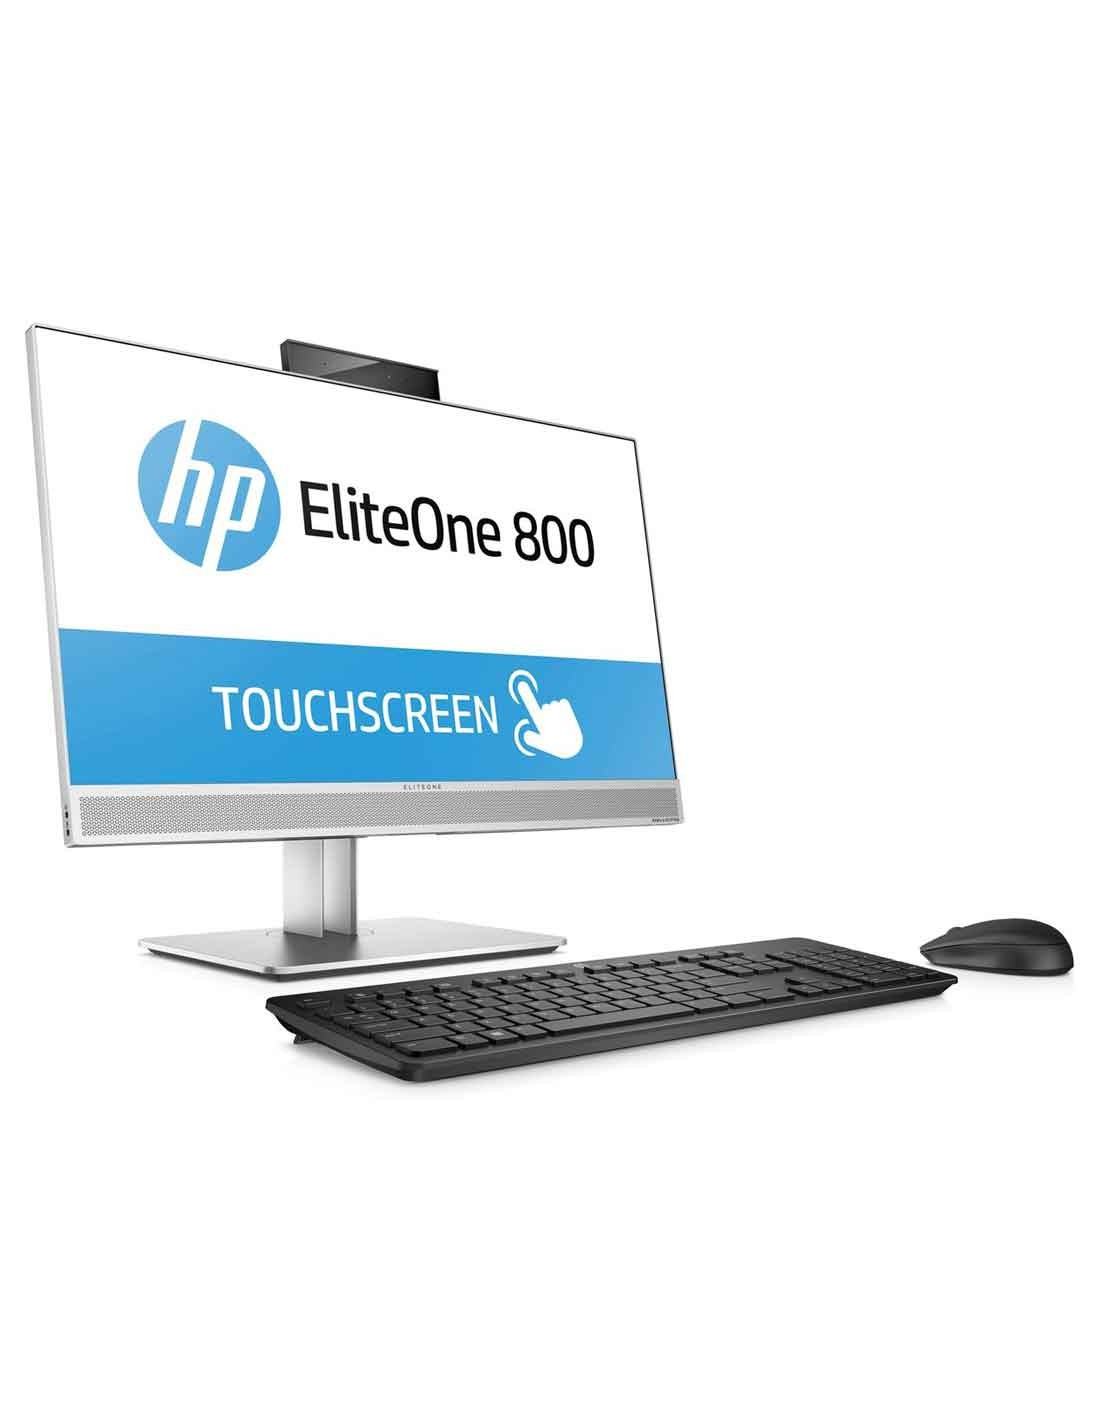 HP EliteOne 800 G3 Touch All-in-One PC images